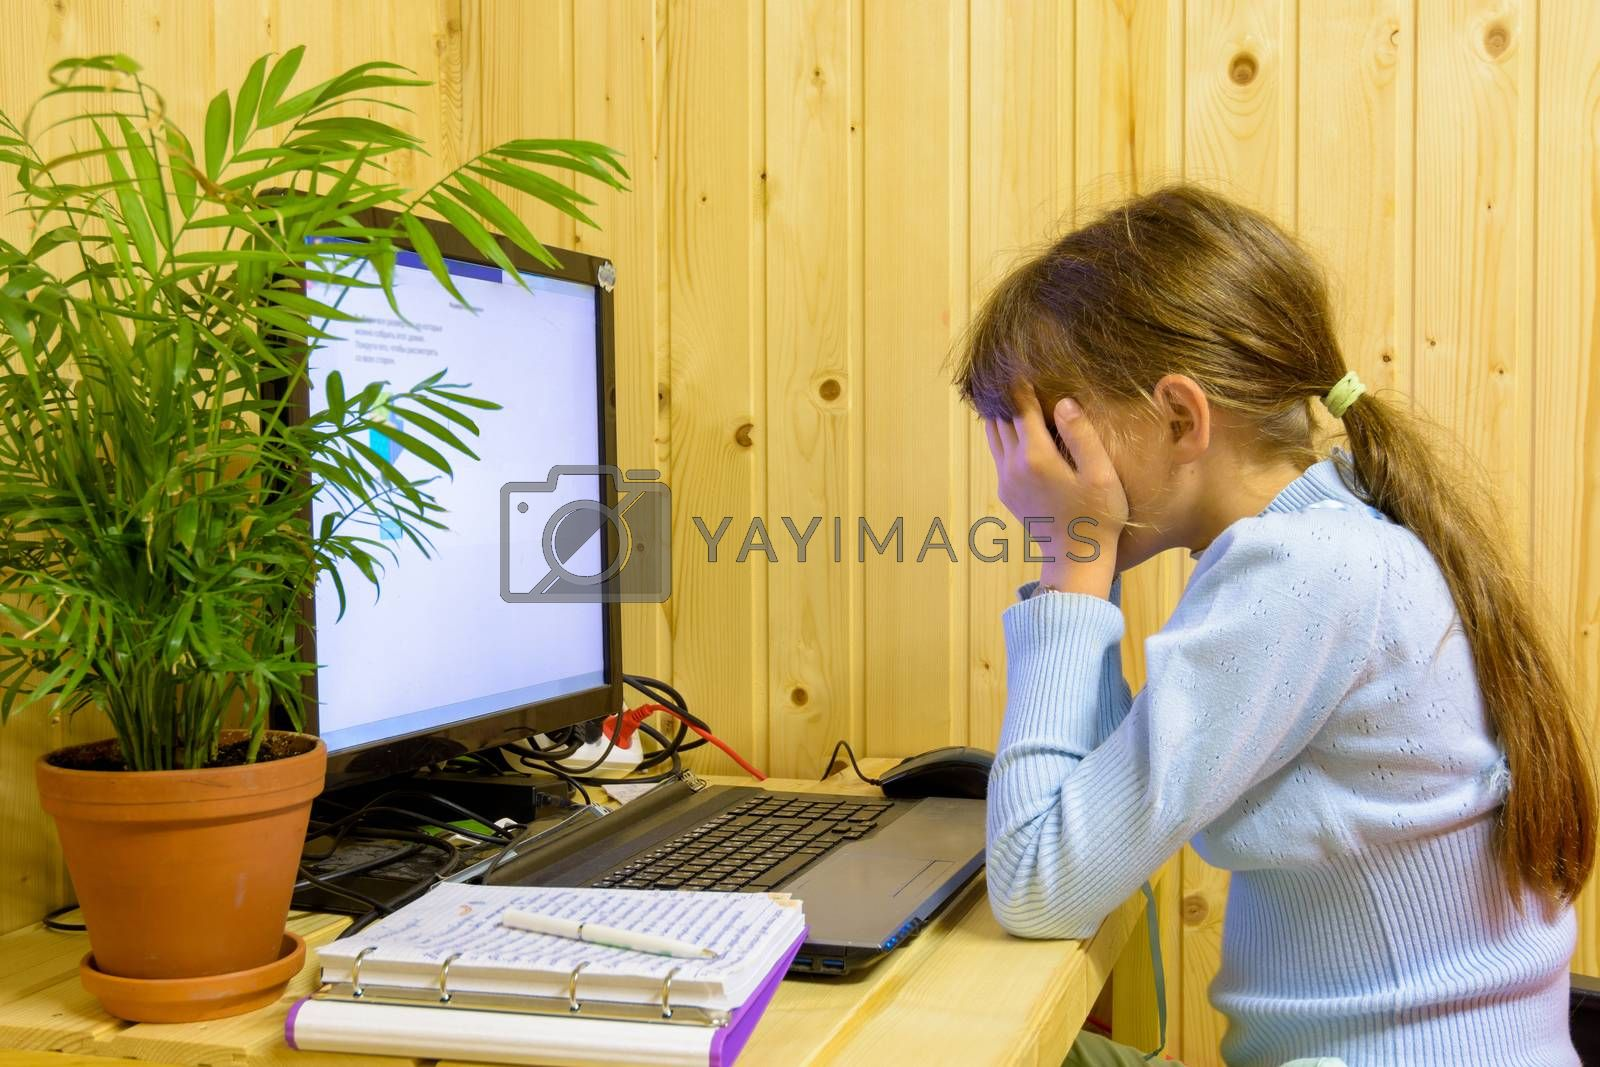 The girl closed her eyes from the fatigue of distance learning